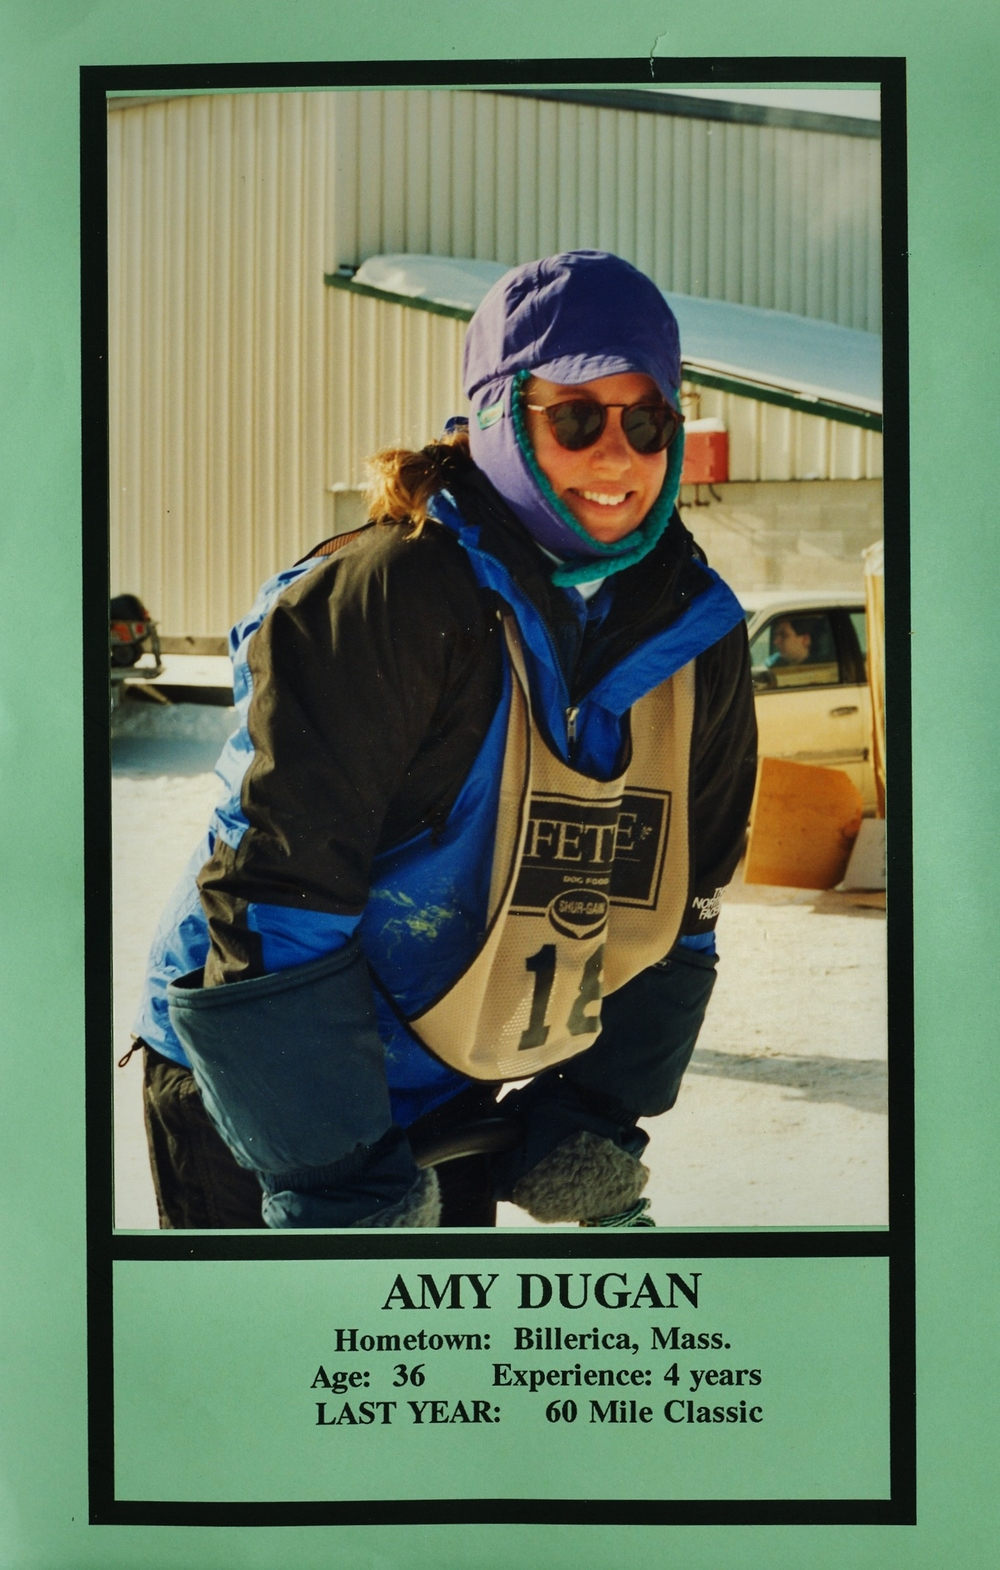 Snofest 1994 Amy Dugan, Billerica, Mass..jpg